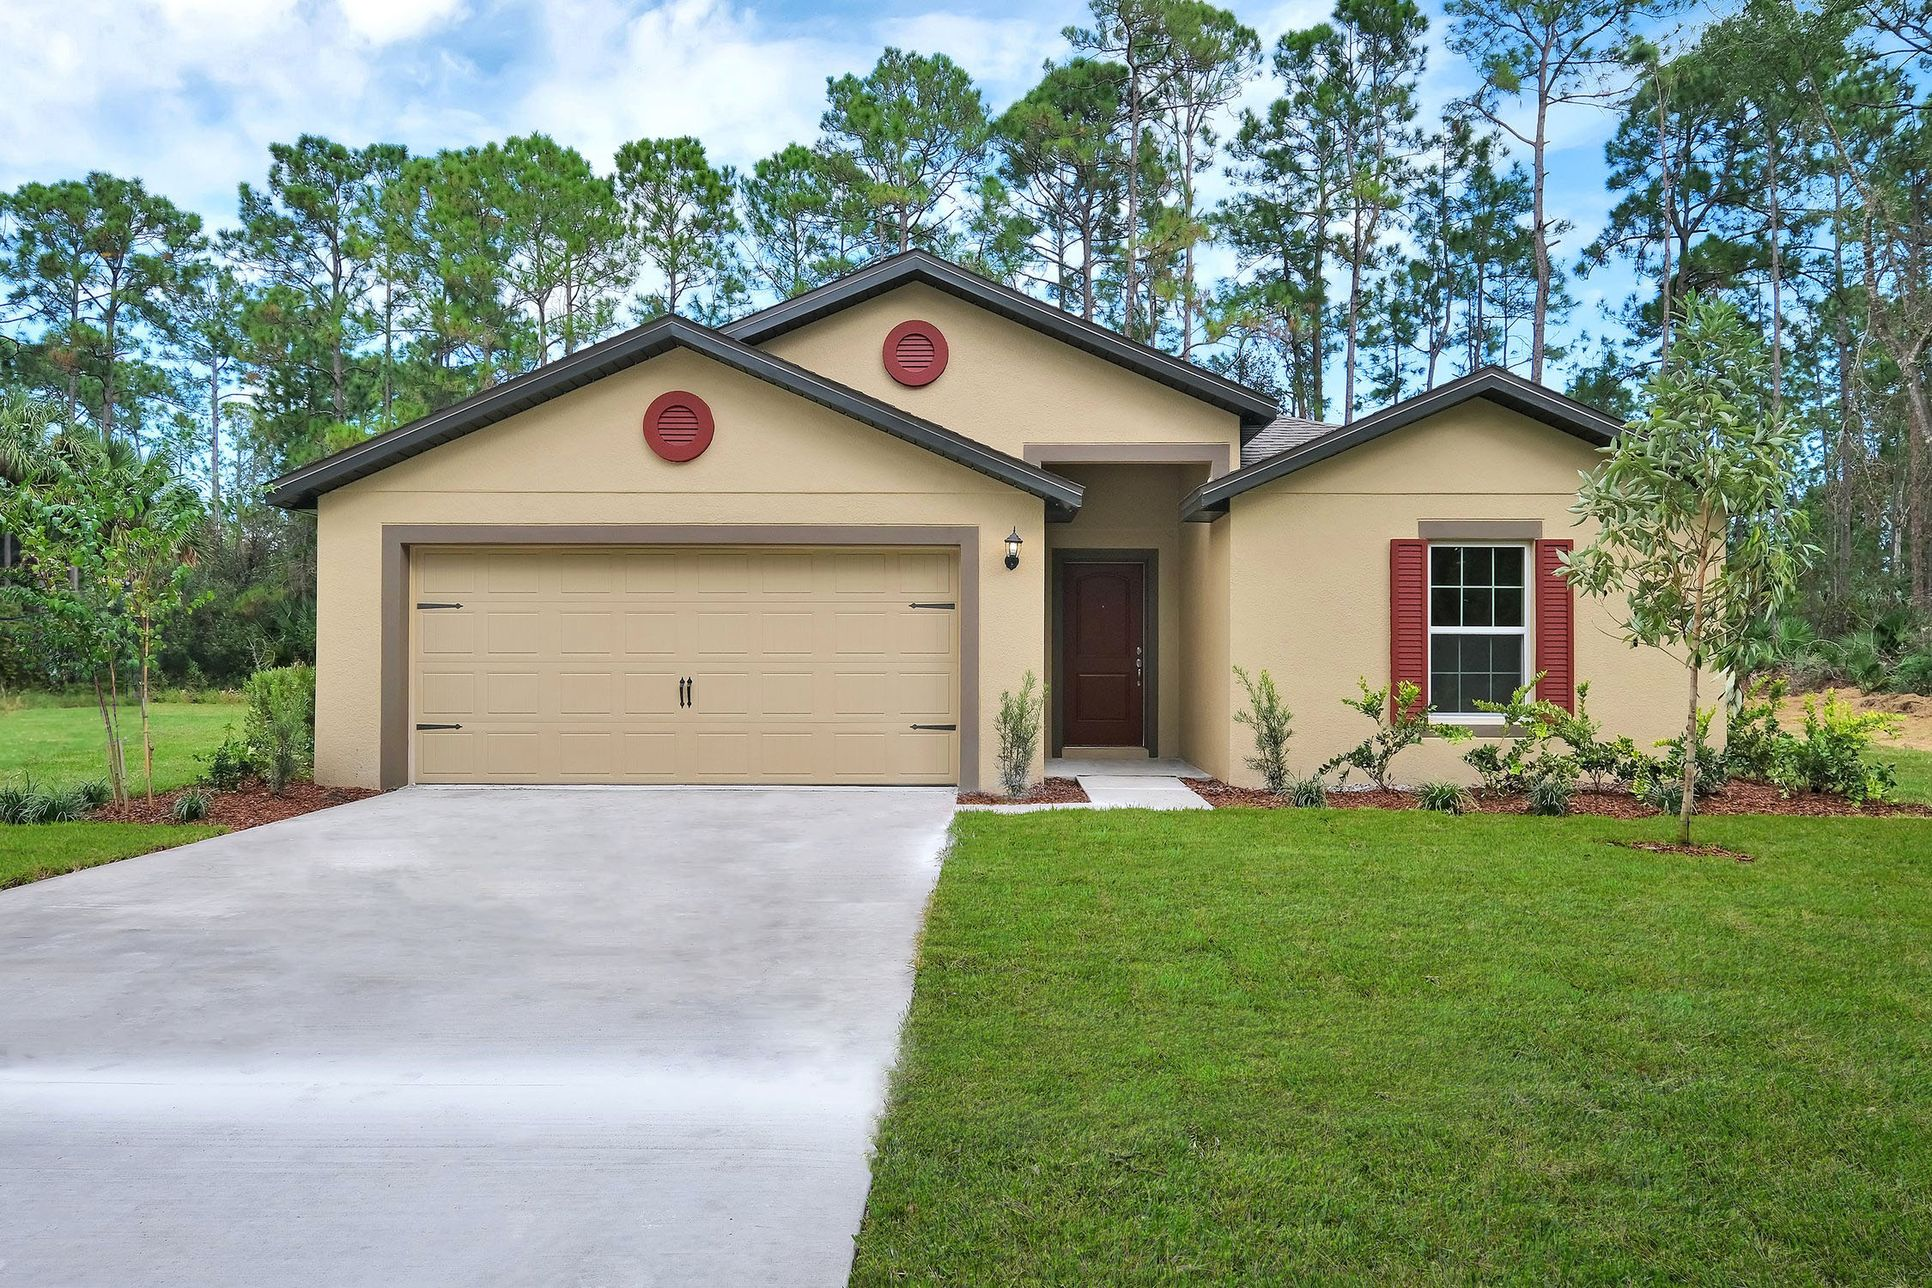 The Capri at Port St. Lucie:Move-in ready home in an exceptional location